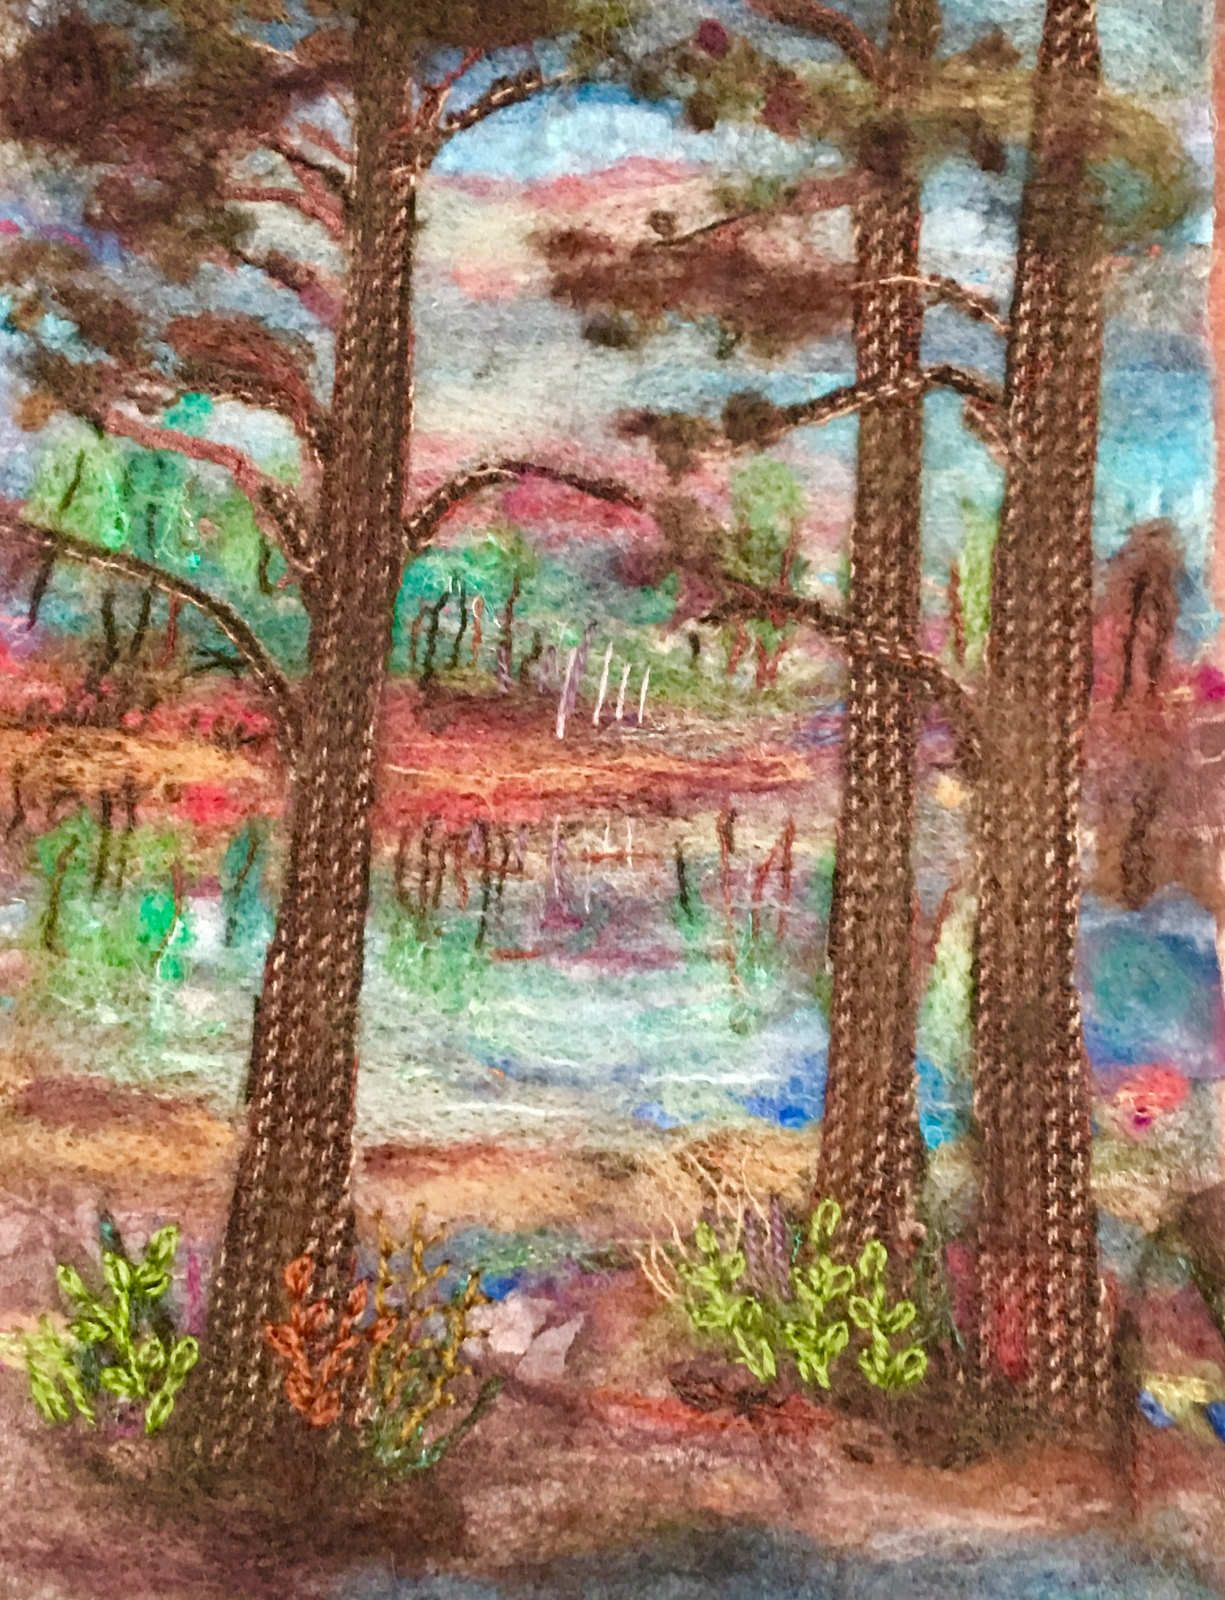 https://flic.kr/p/GL3Dw5 | Georgia Pond at Sunset | This small needle felted quilt is 8x12 inches. It is comprised mostly of wool with some cotton fabric.